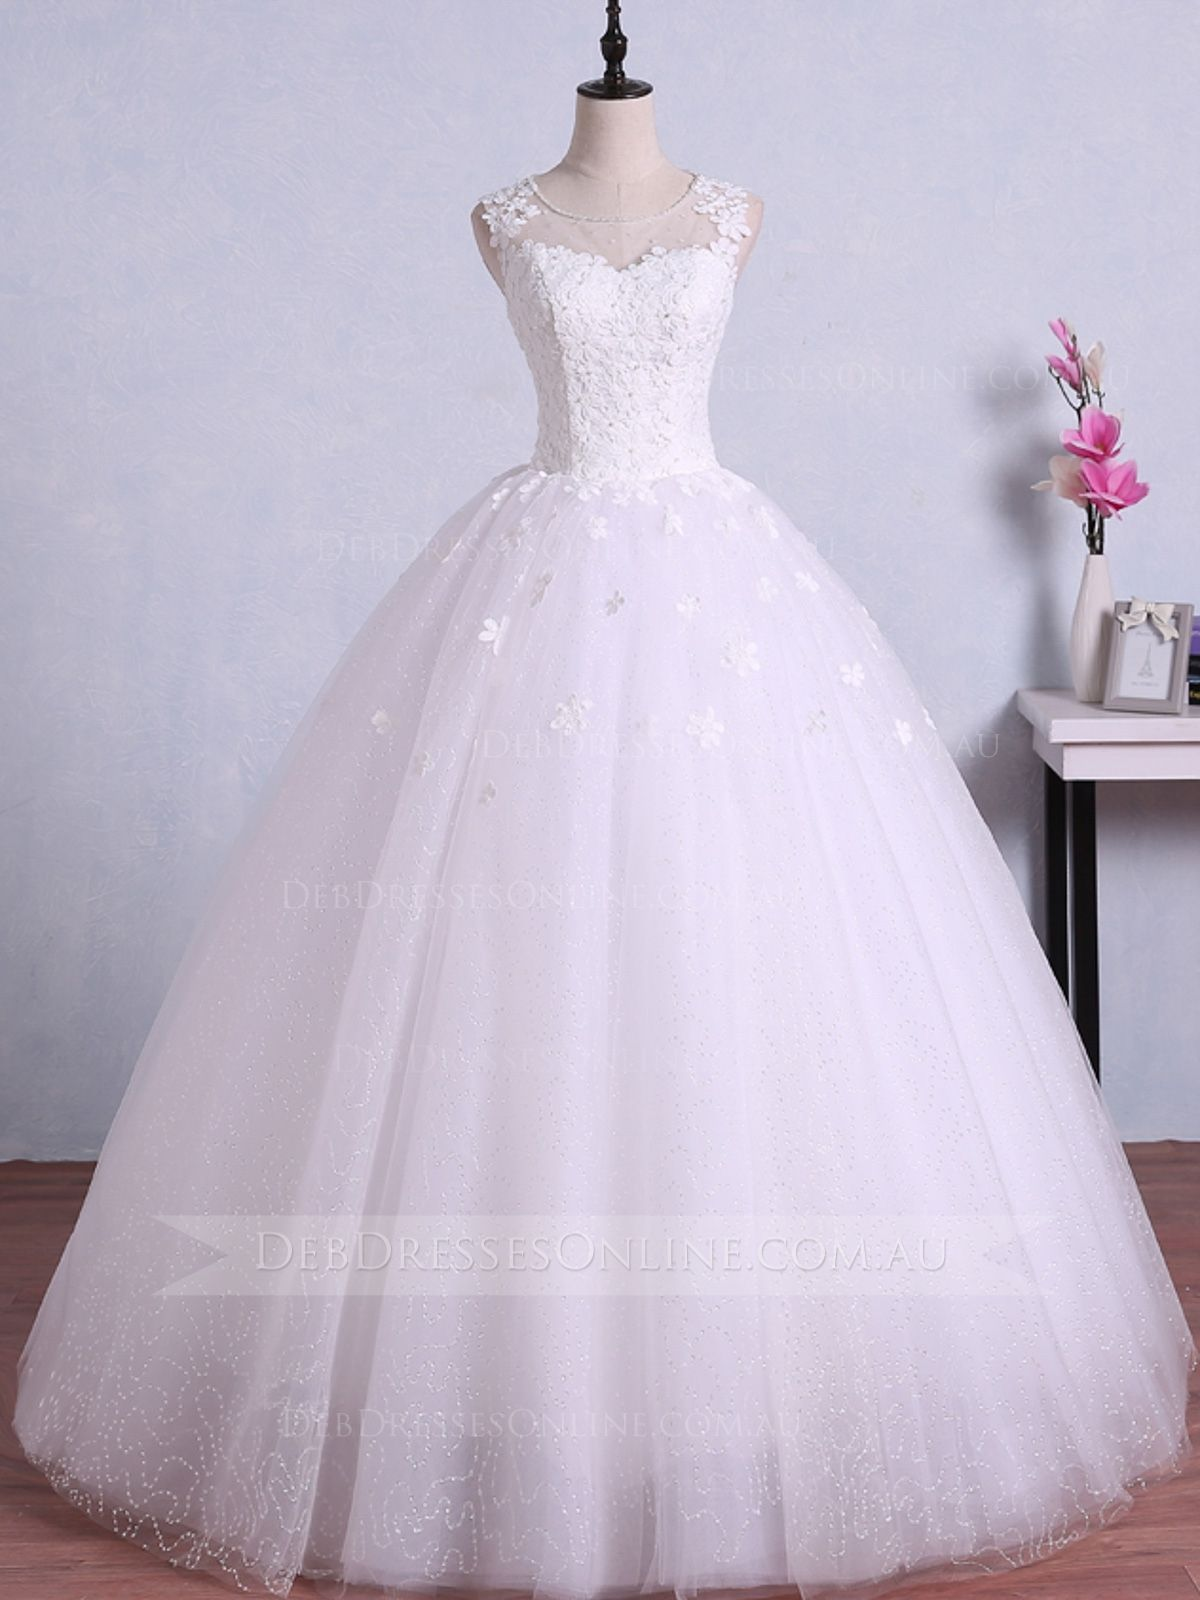 Princess Lace Deb Dress 16082301  9bdfa7fa6766